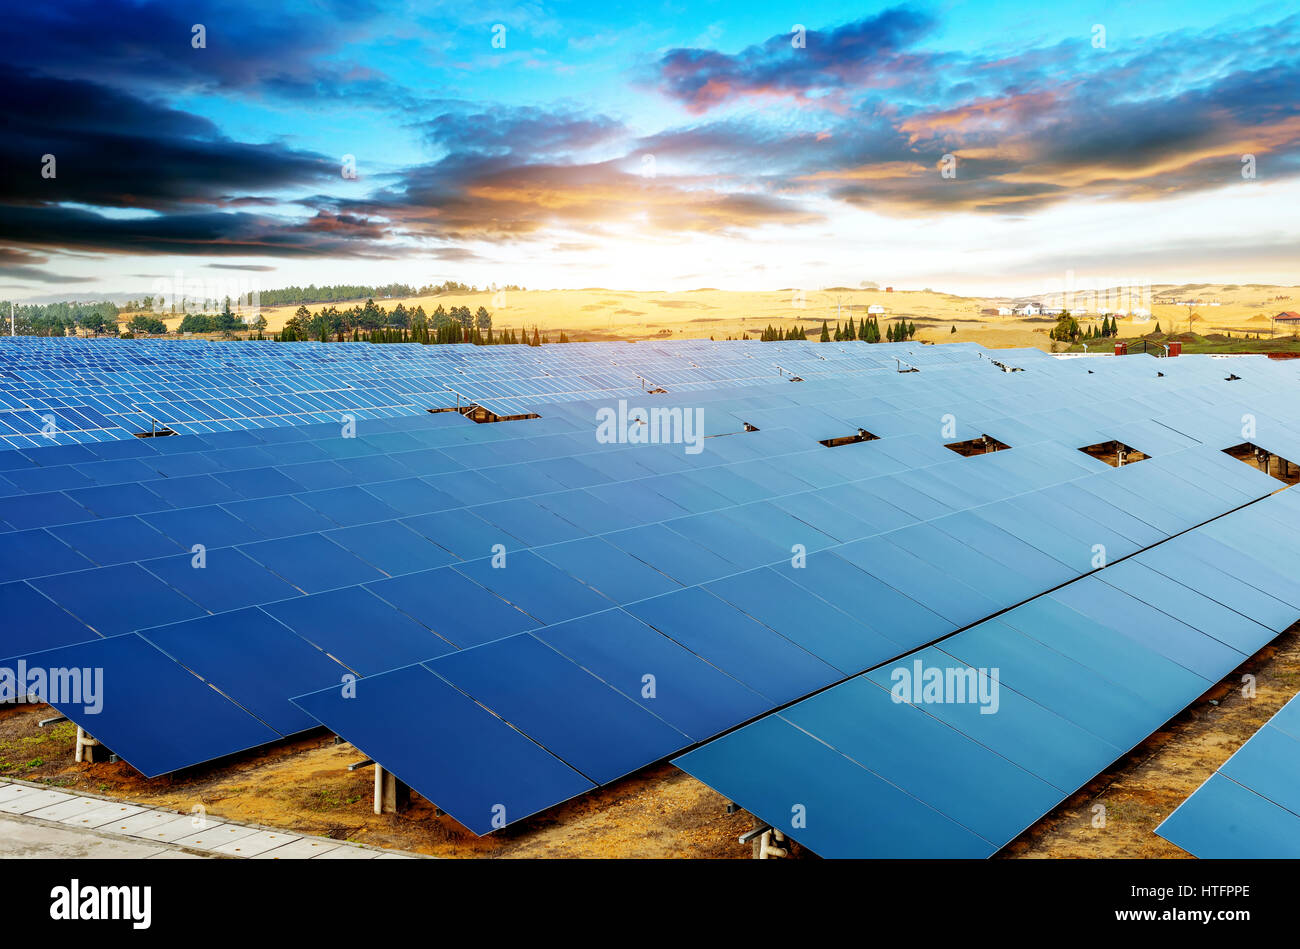 In the evening, when the solar panels - Stock Image